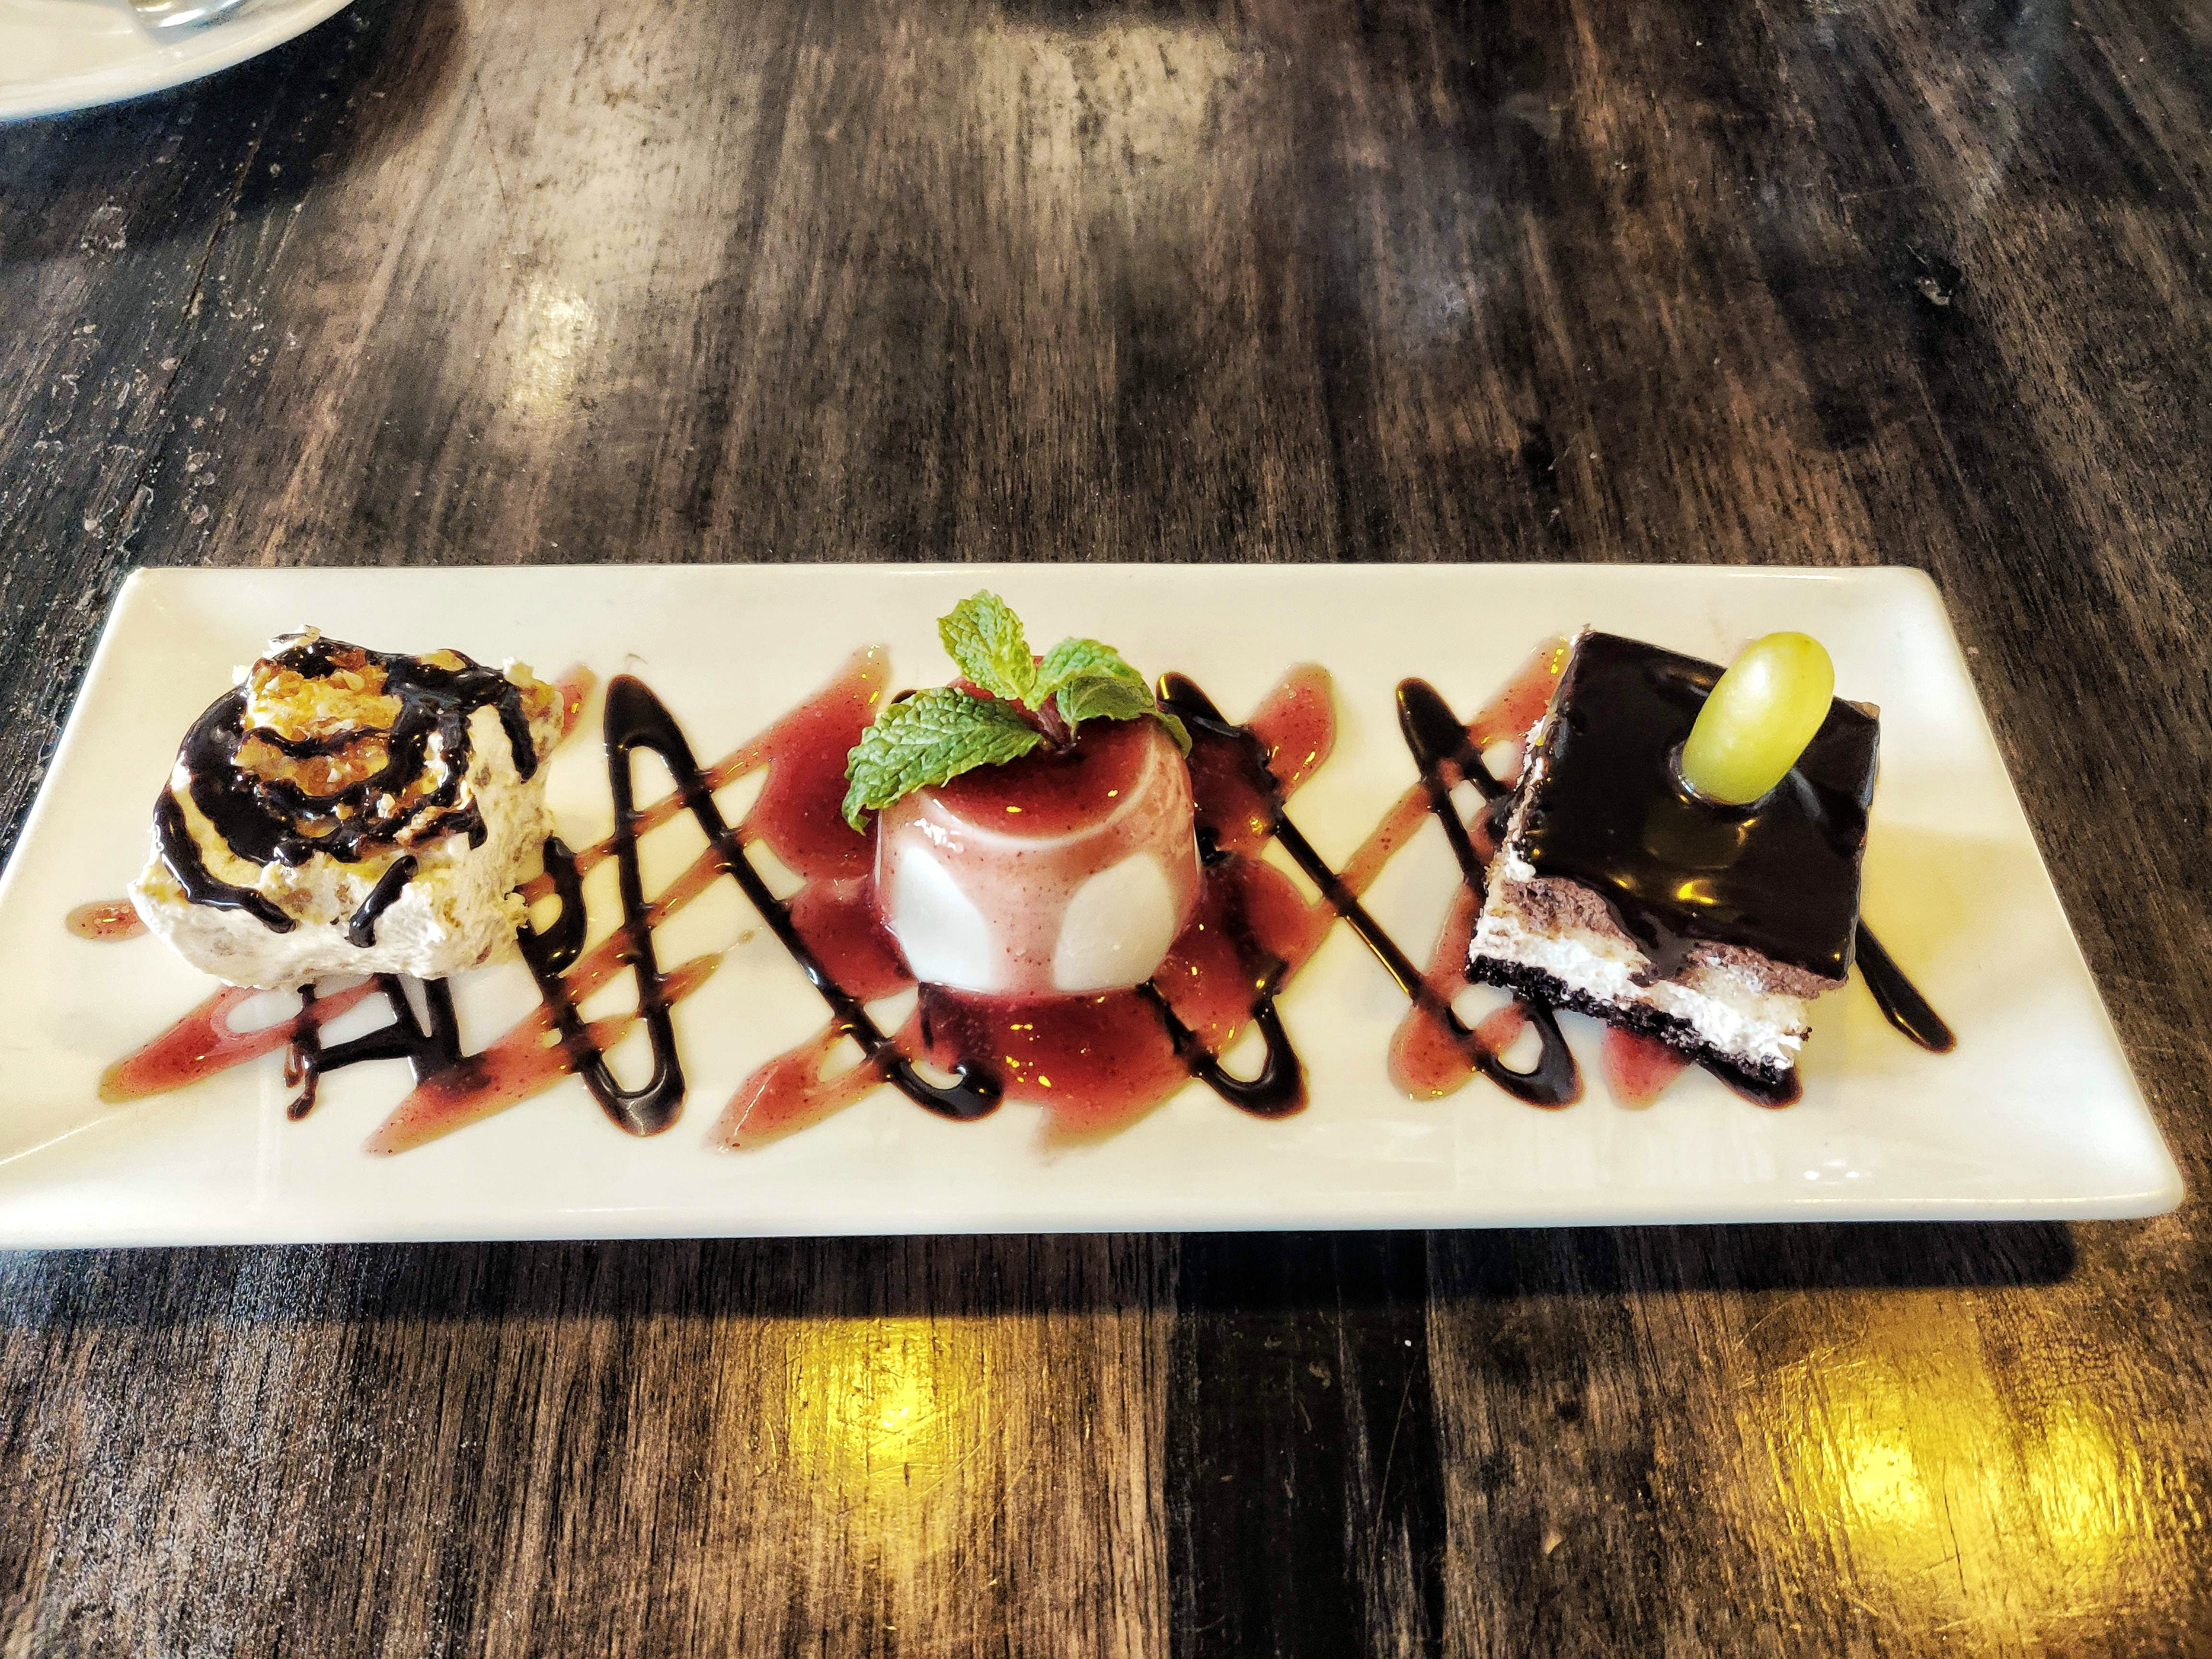 This Quaint Cafe Offers Amazing Italian Food Along With Pretty Desserts